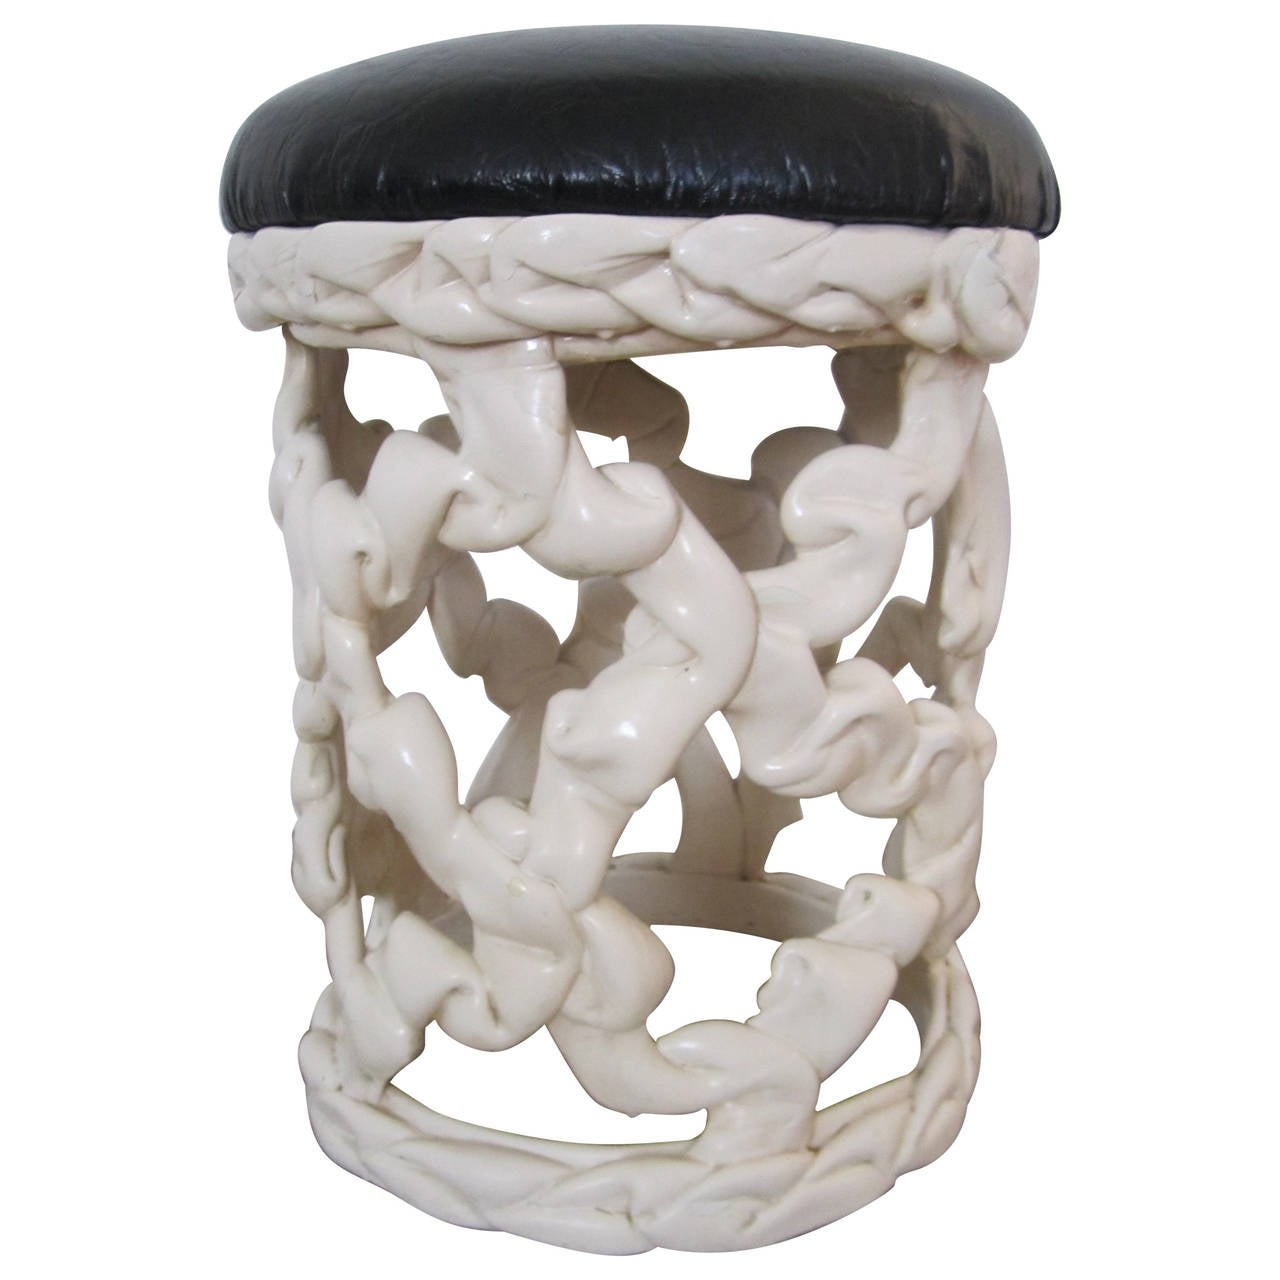 Vintage Black and White Ribbon Stool in the Style of Tony Duquette, 1970s